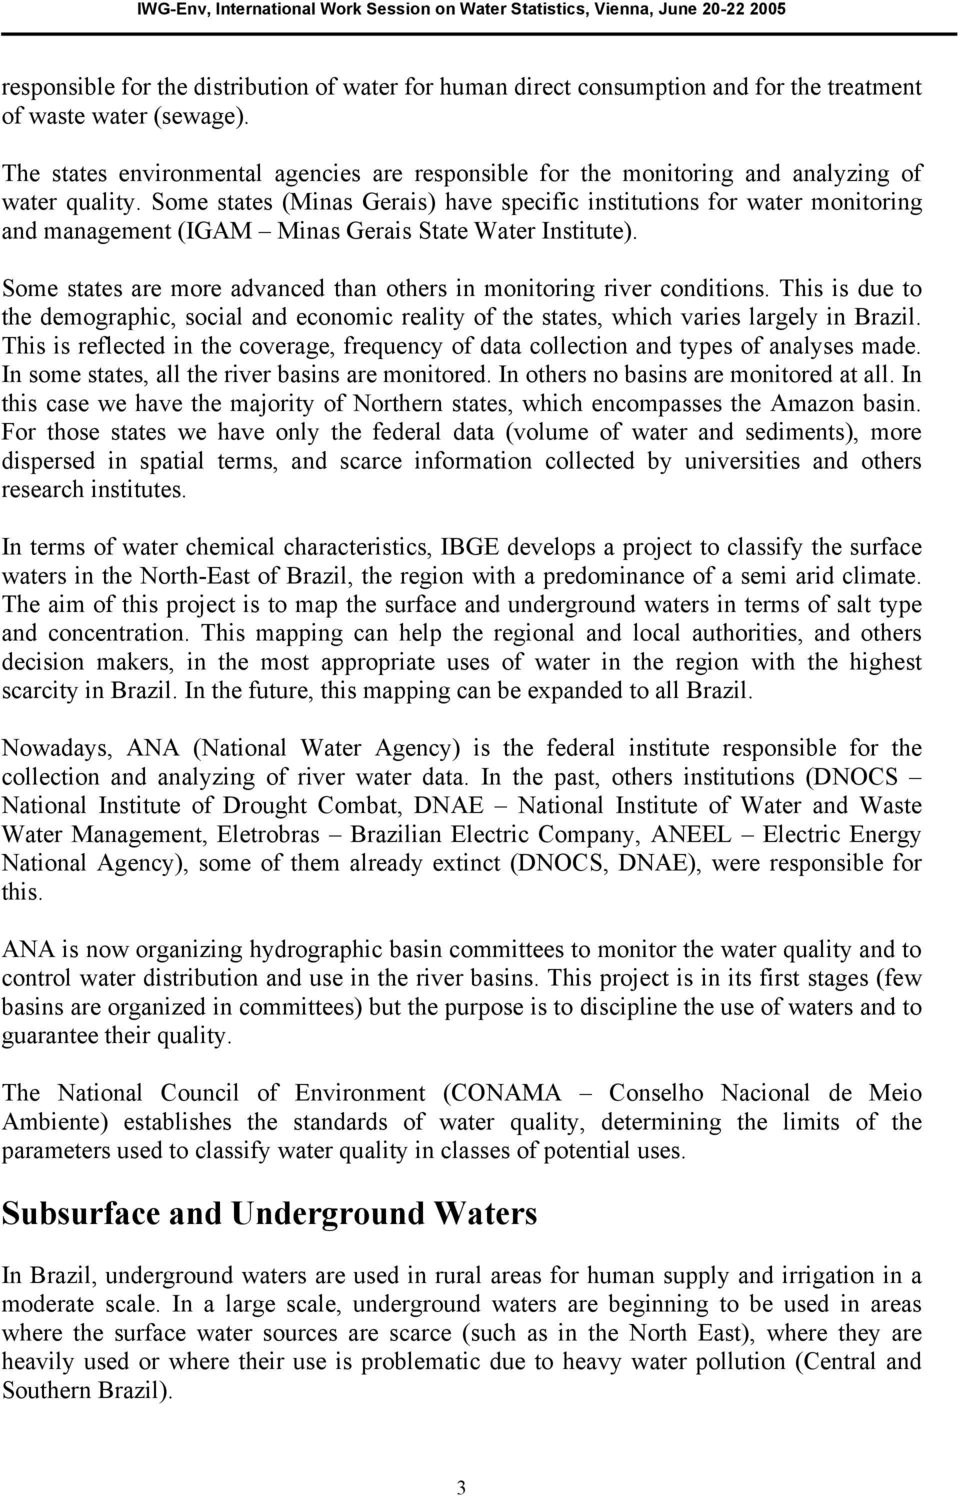 Some states (Minas Gerais) have specific institutions for water monitoring and management (IGAM Minas Gerais State Water Institute).